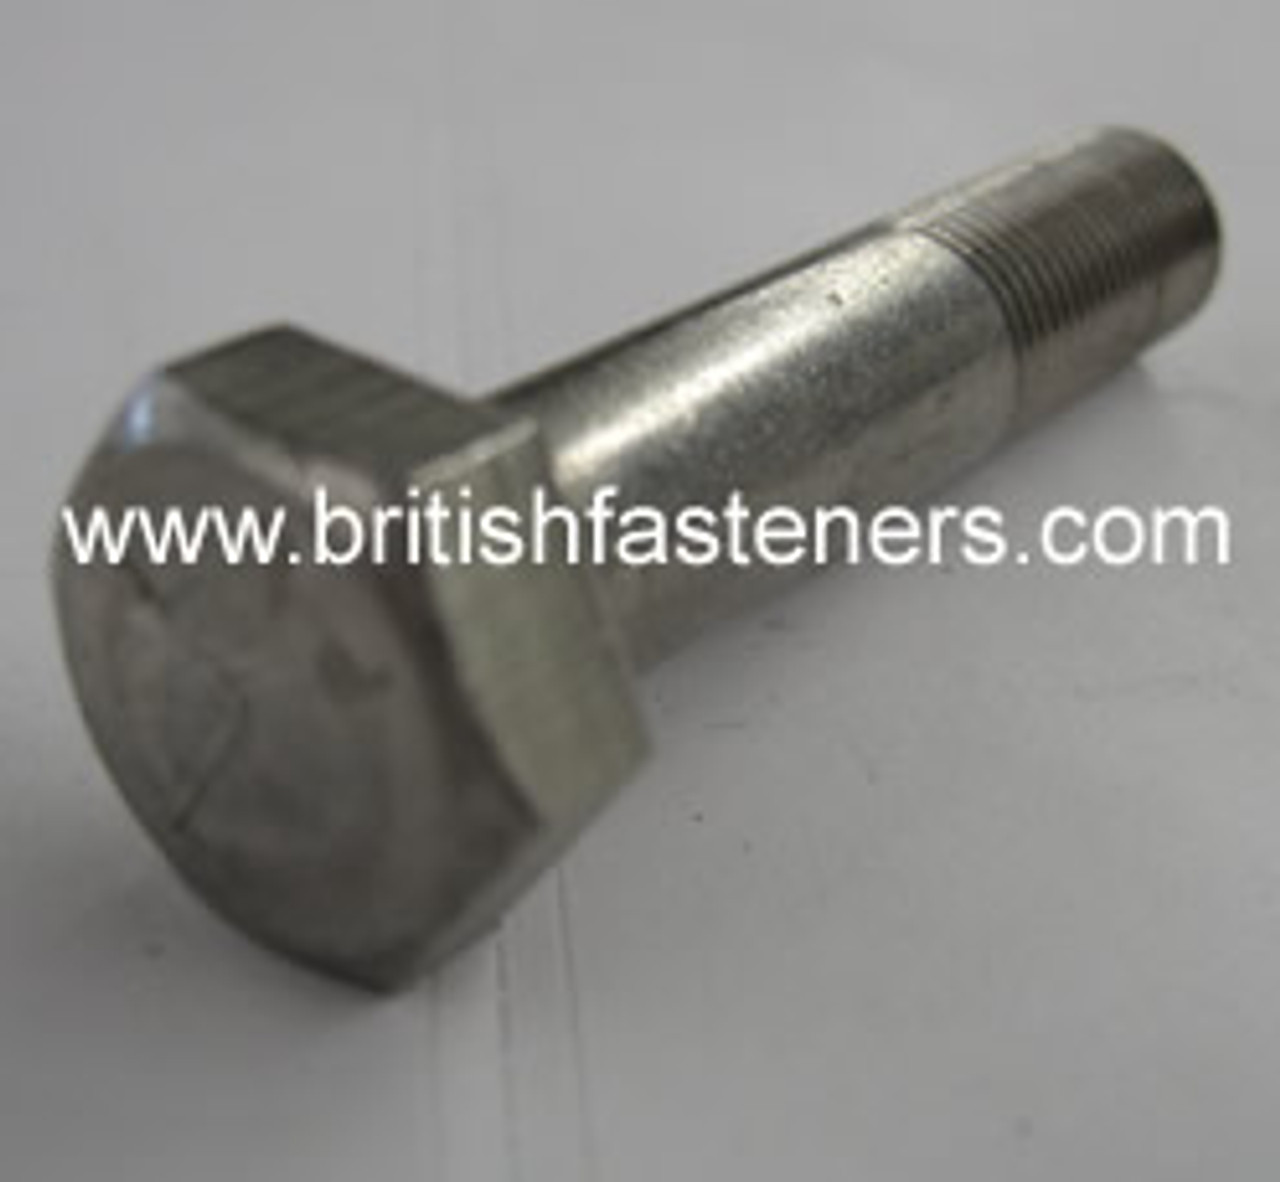 """BSC Stainless Bolt 3/8 - 26 x 3"""" - (6680)"""